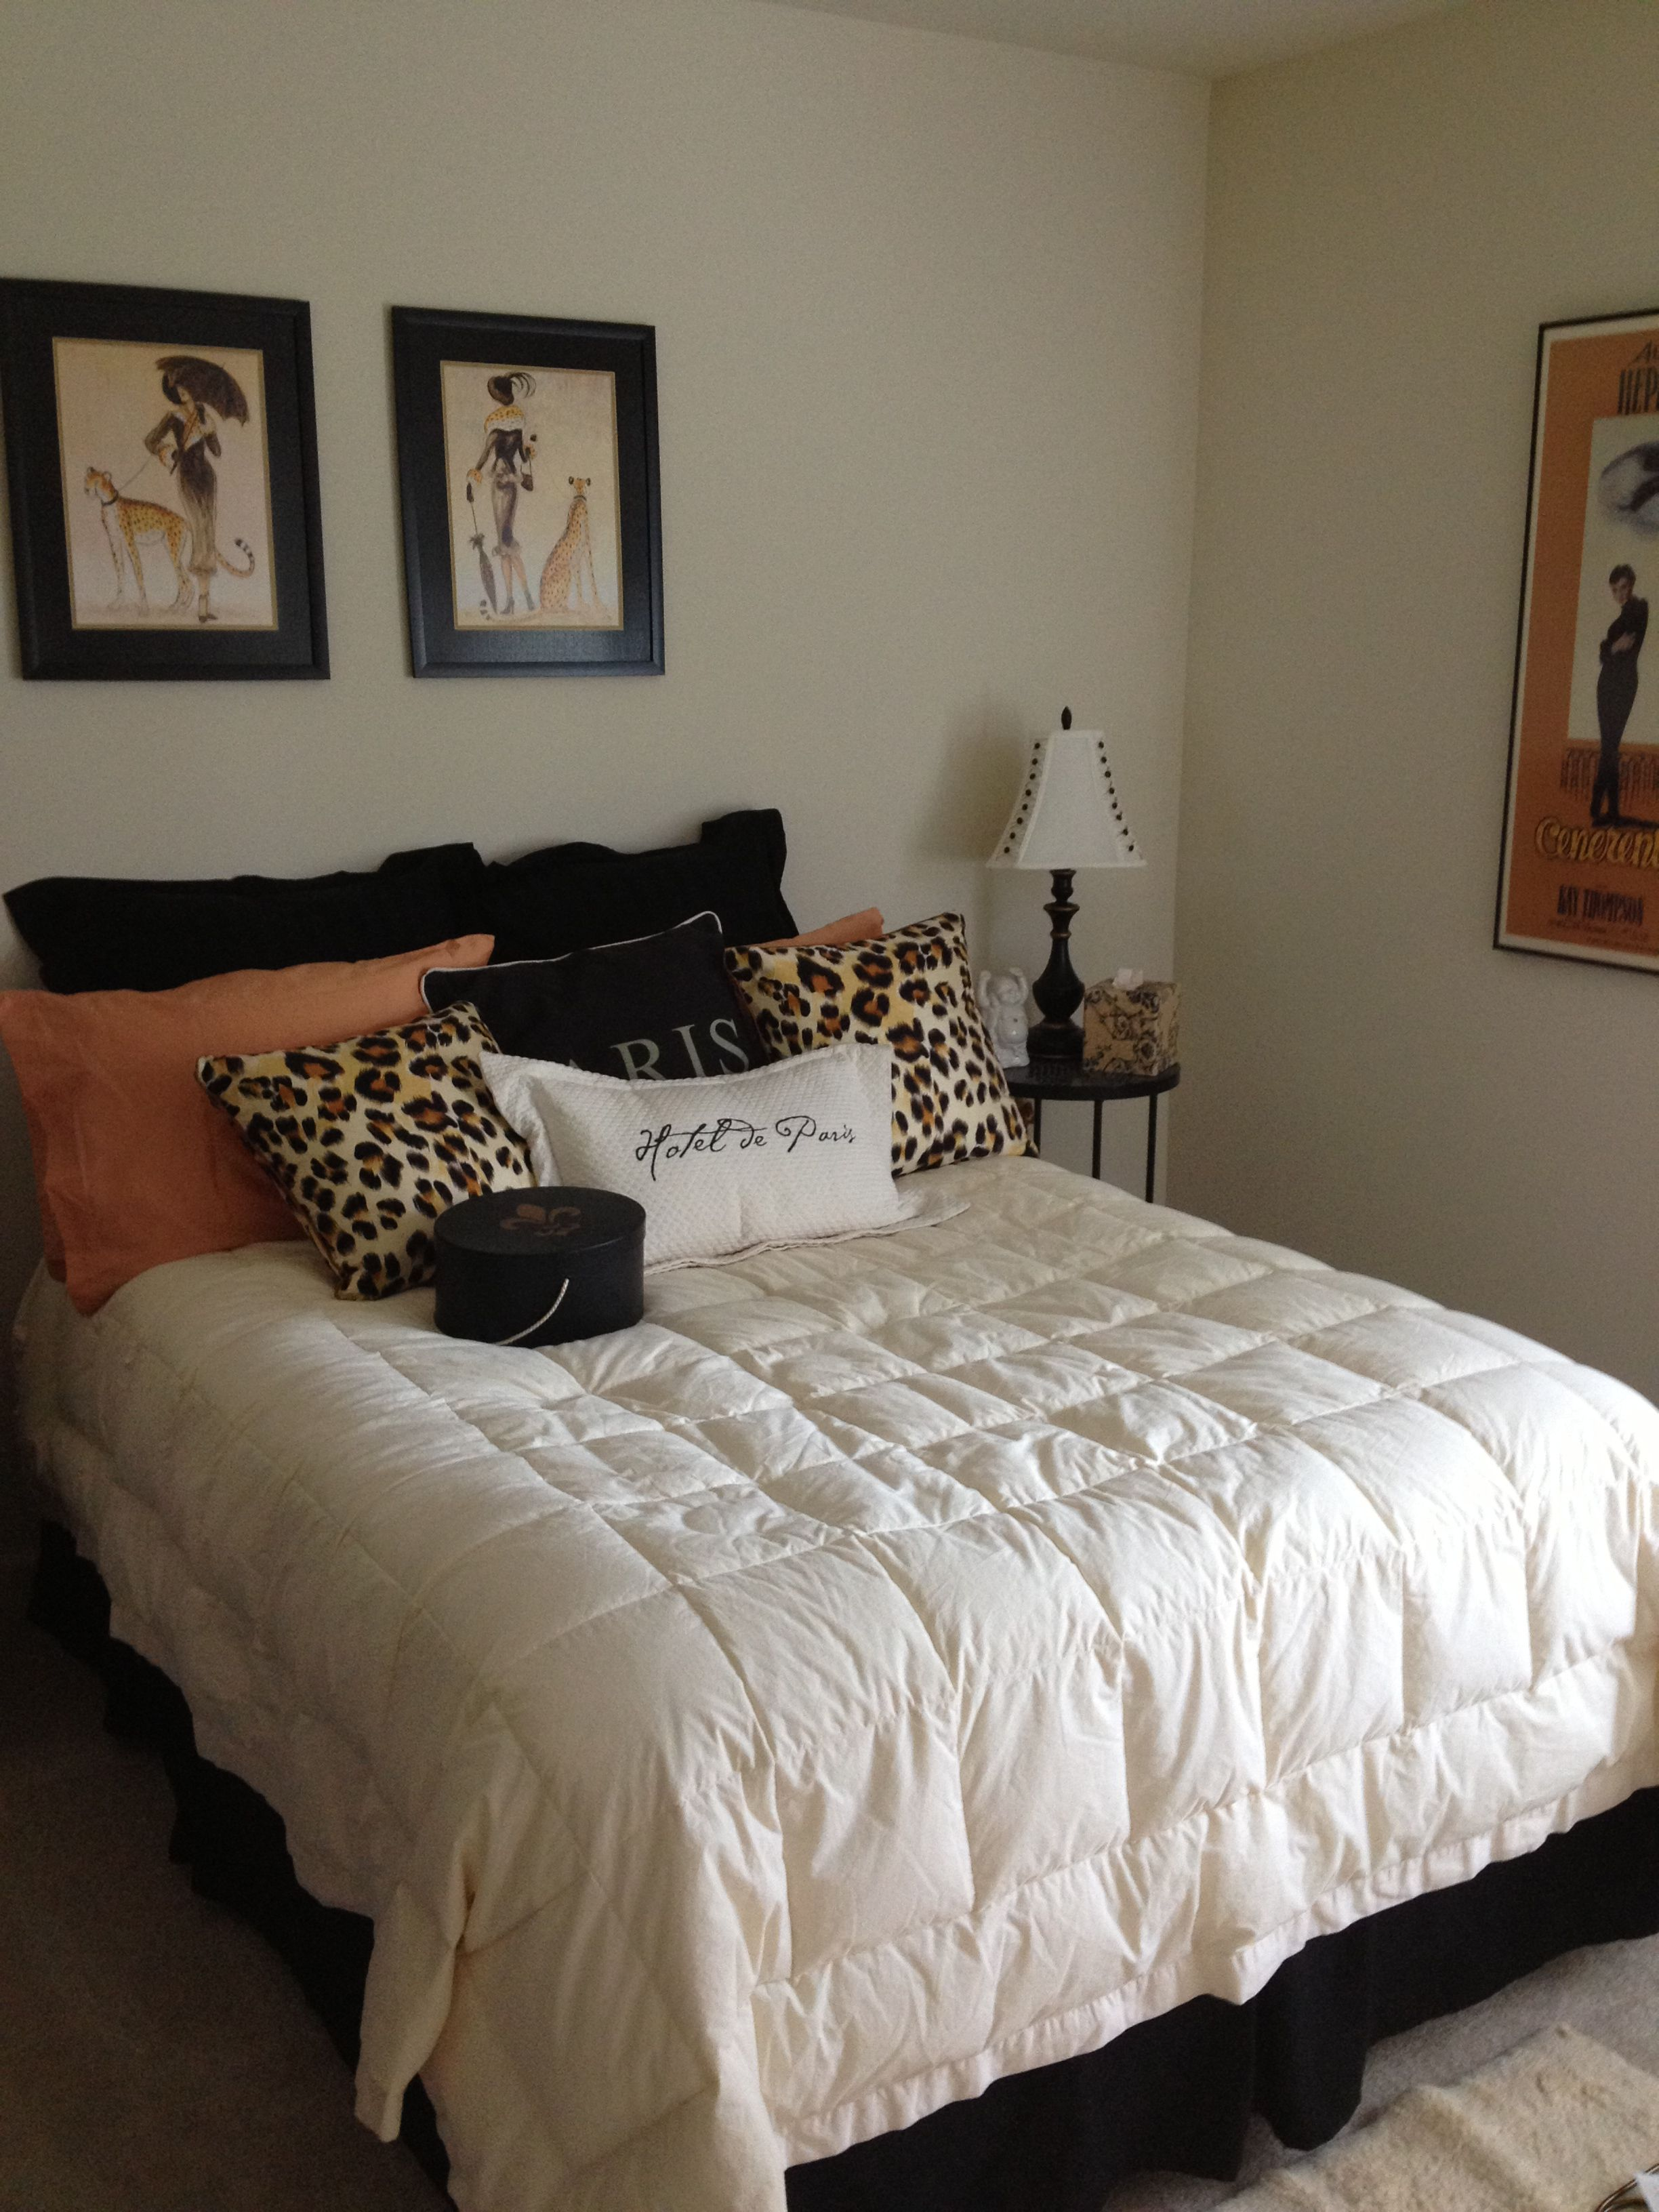 Leopard Bedroom Decor Decorating Ideas For Bedroom With Paris And Leopard Print Theme